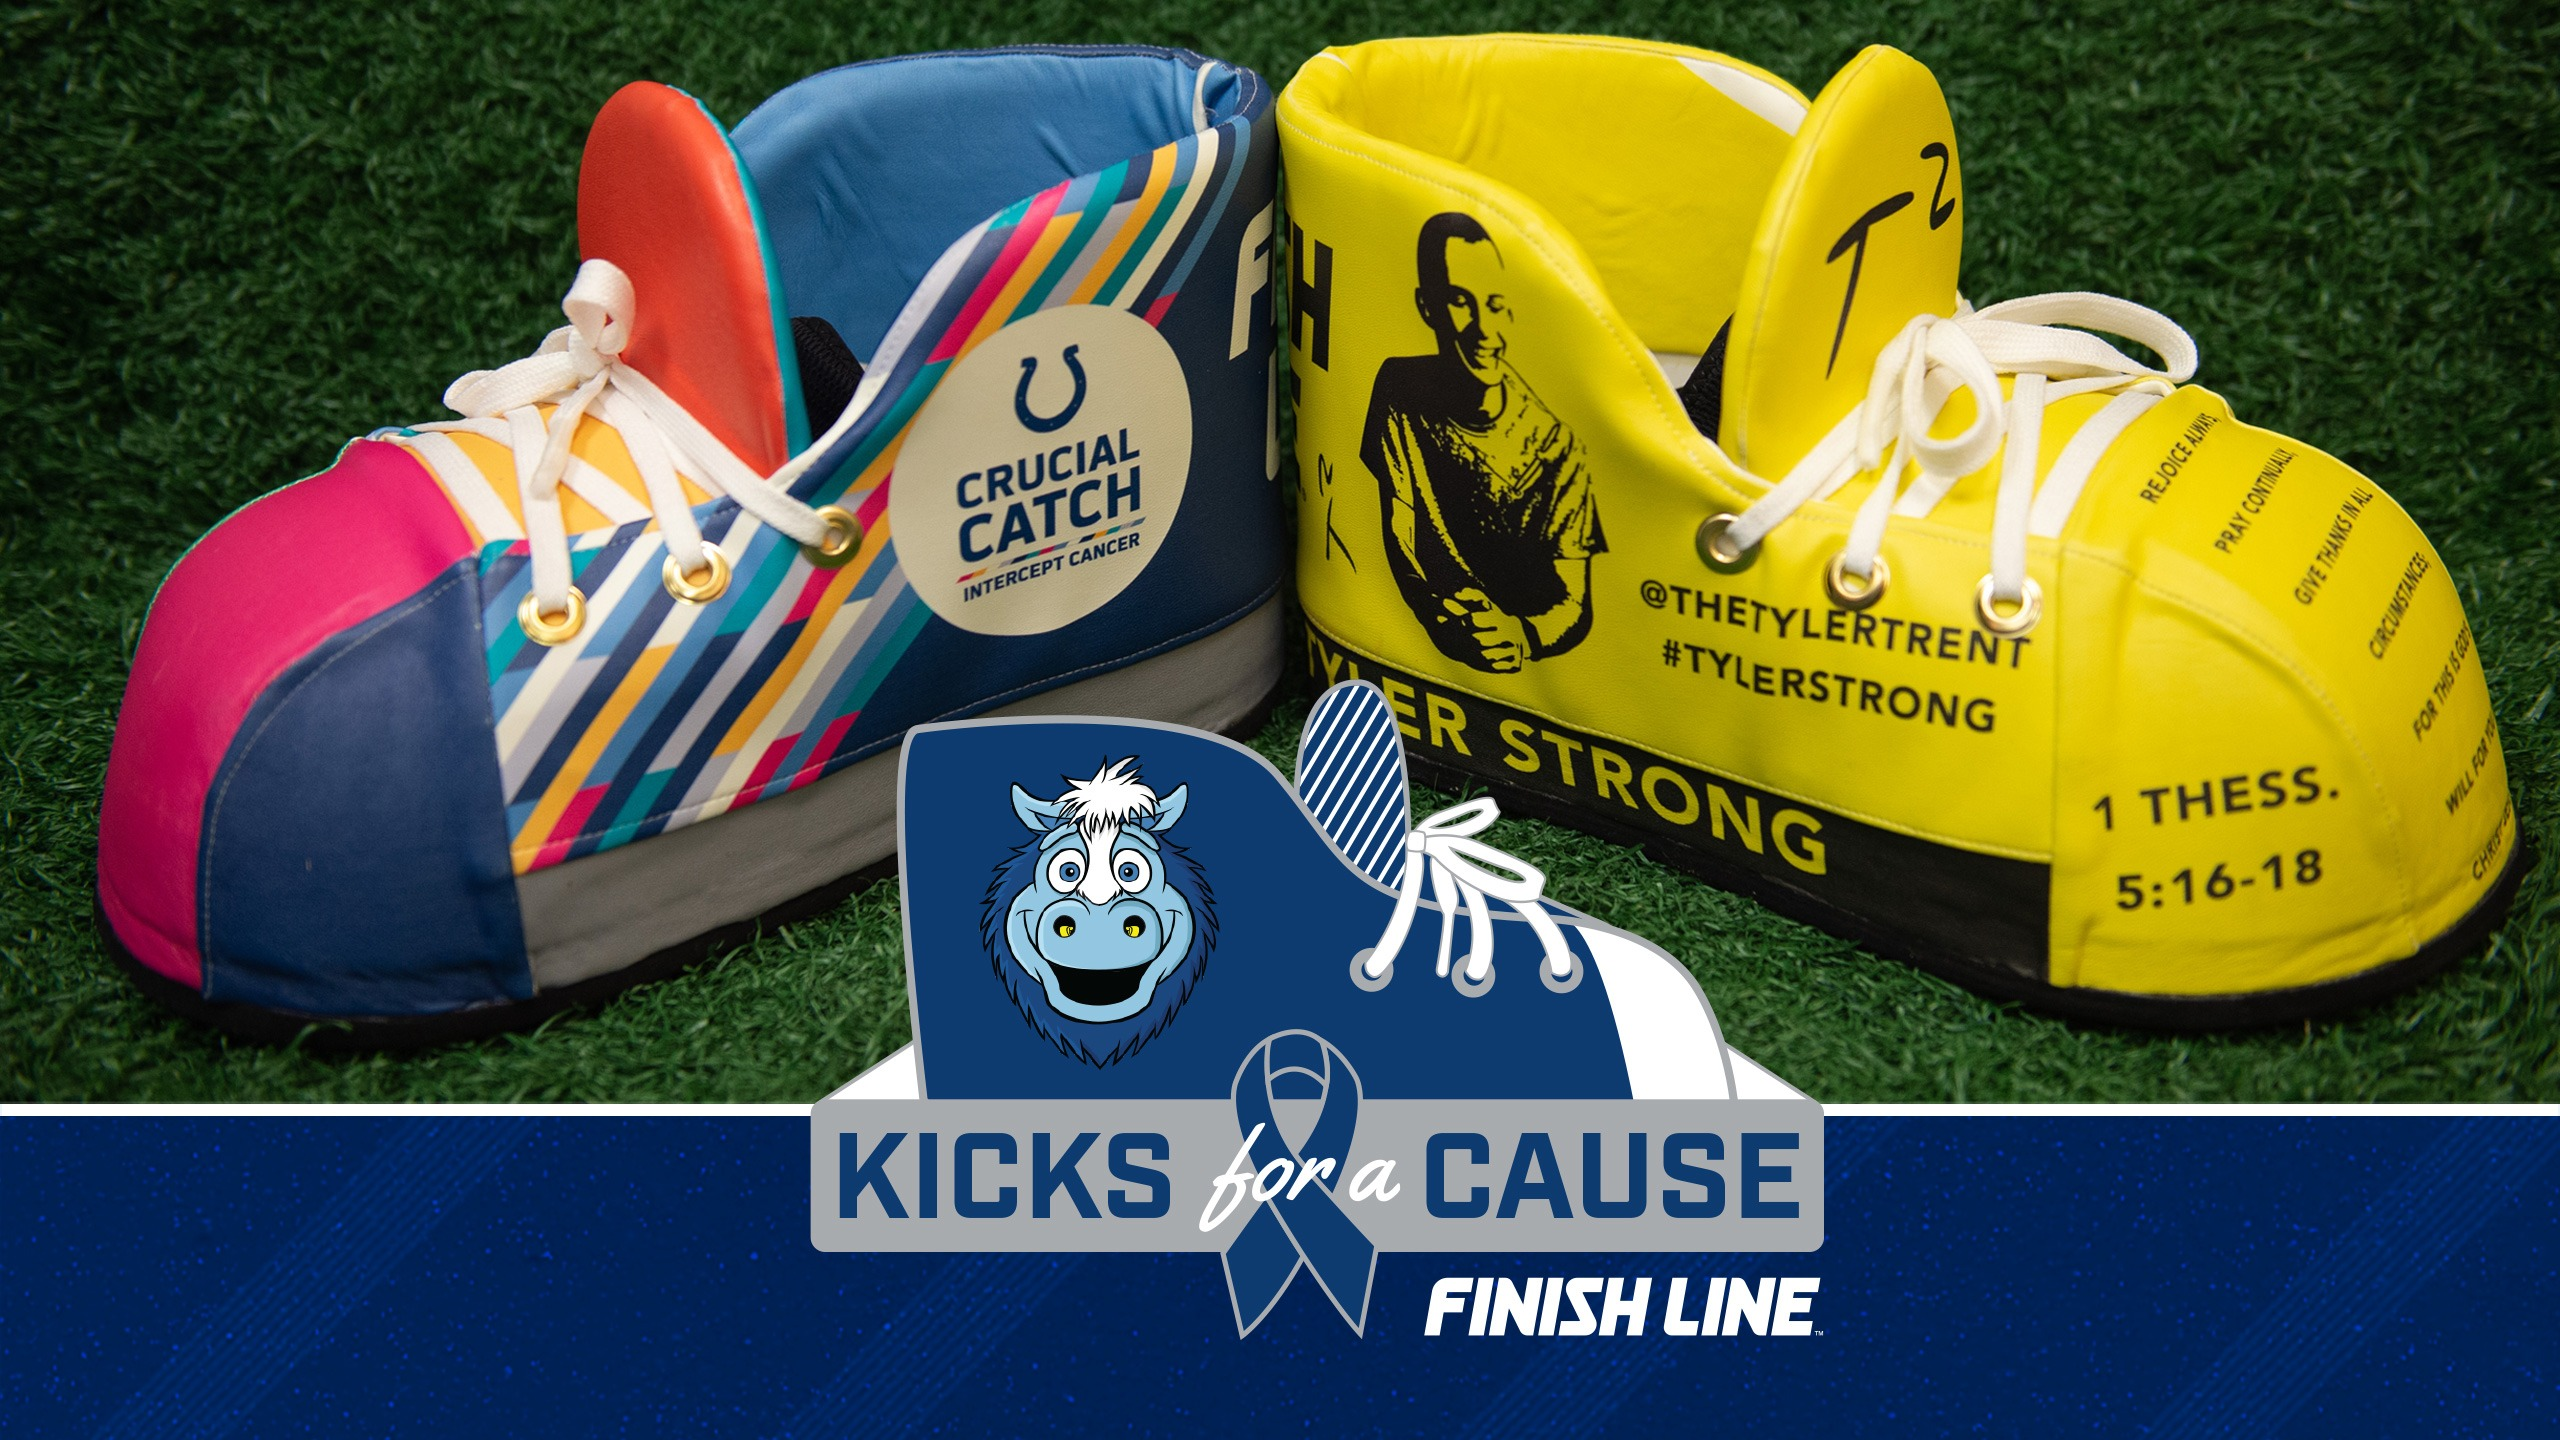 Kicks For A Cause